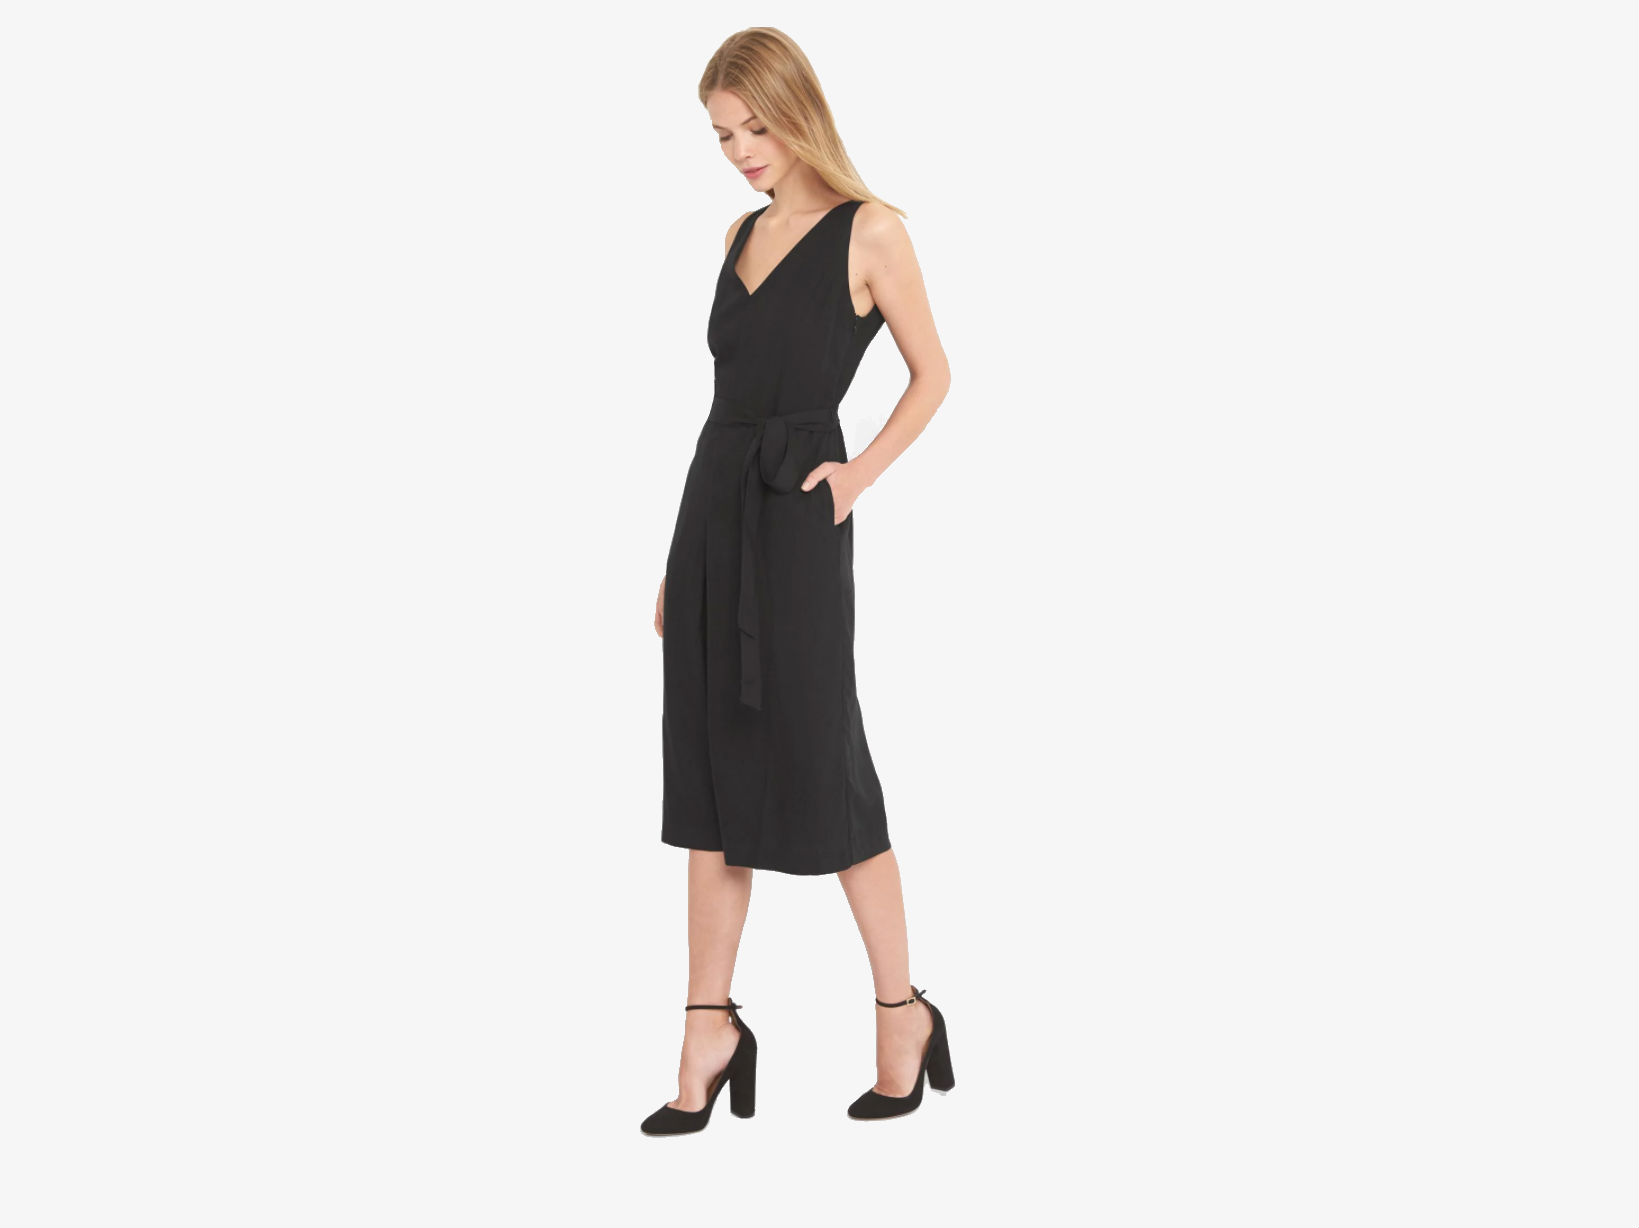 A model in a black sleeveless culotte jumpsuit